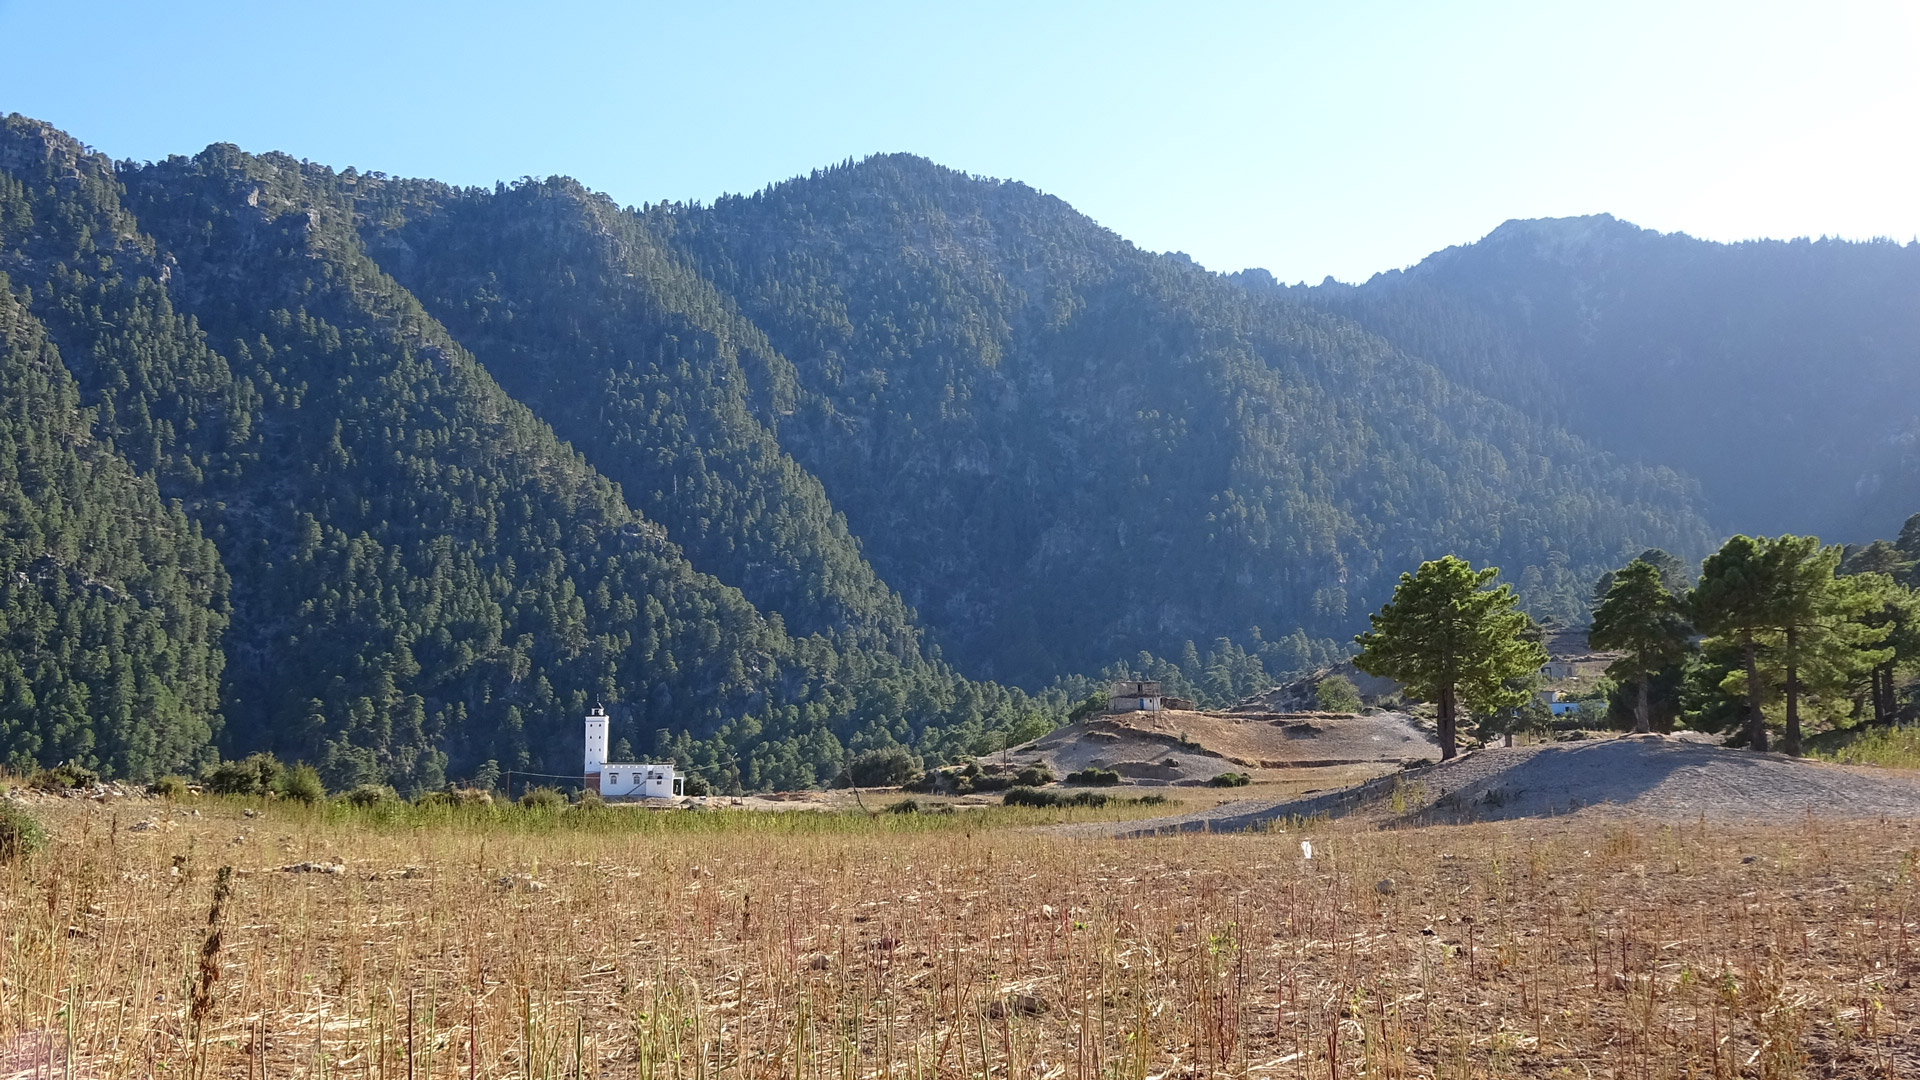 The tiny village of Azilane, home to Abdelkater's gîte.